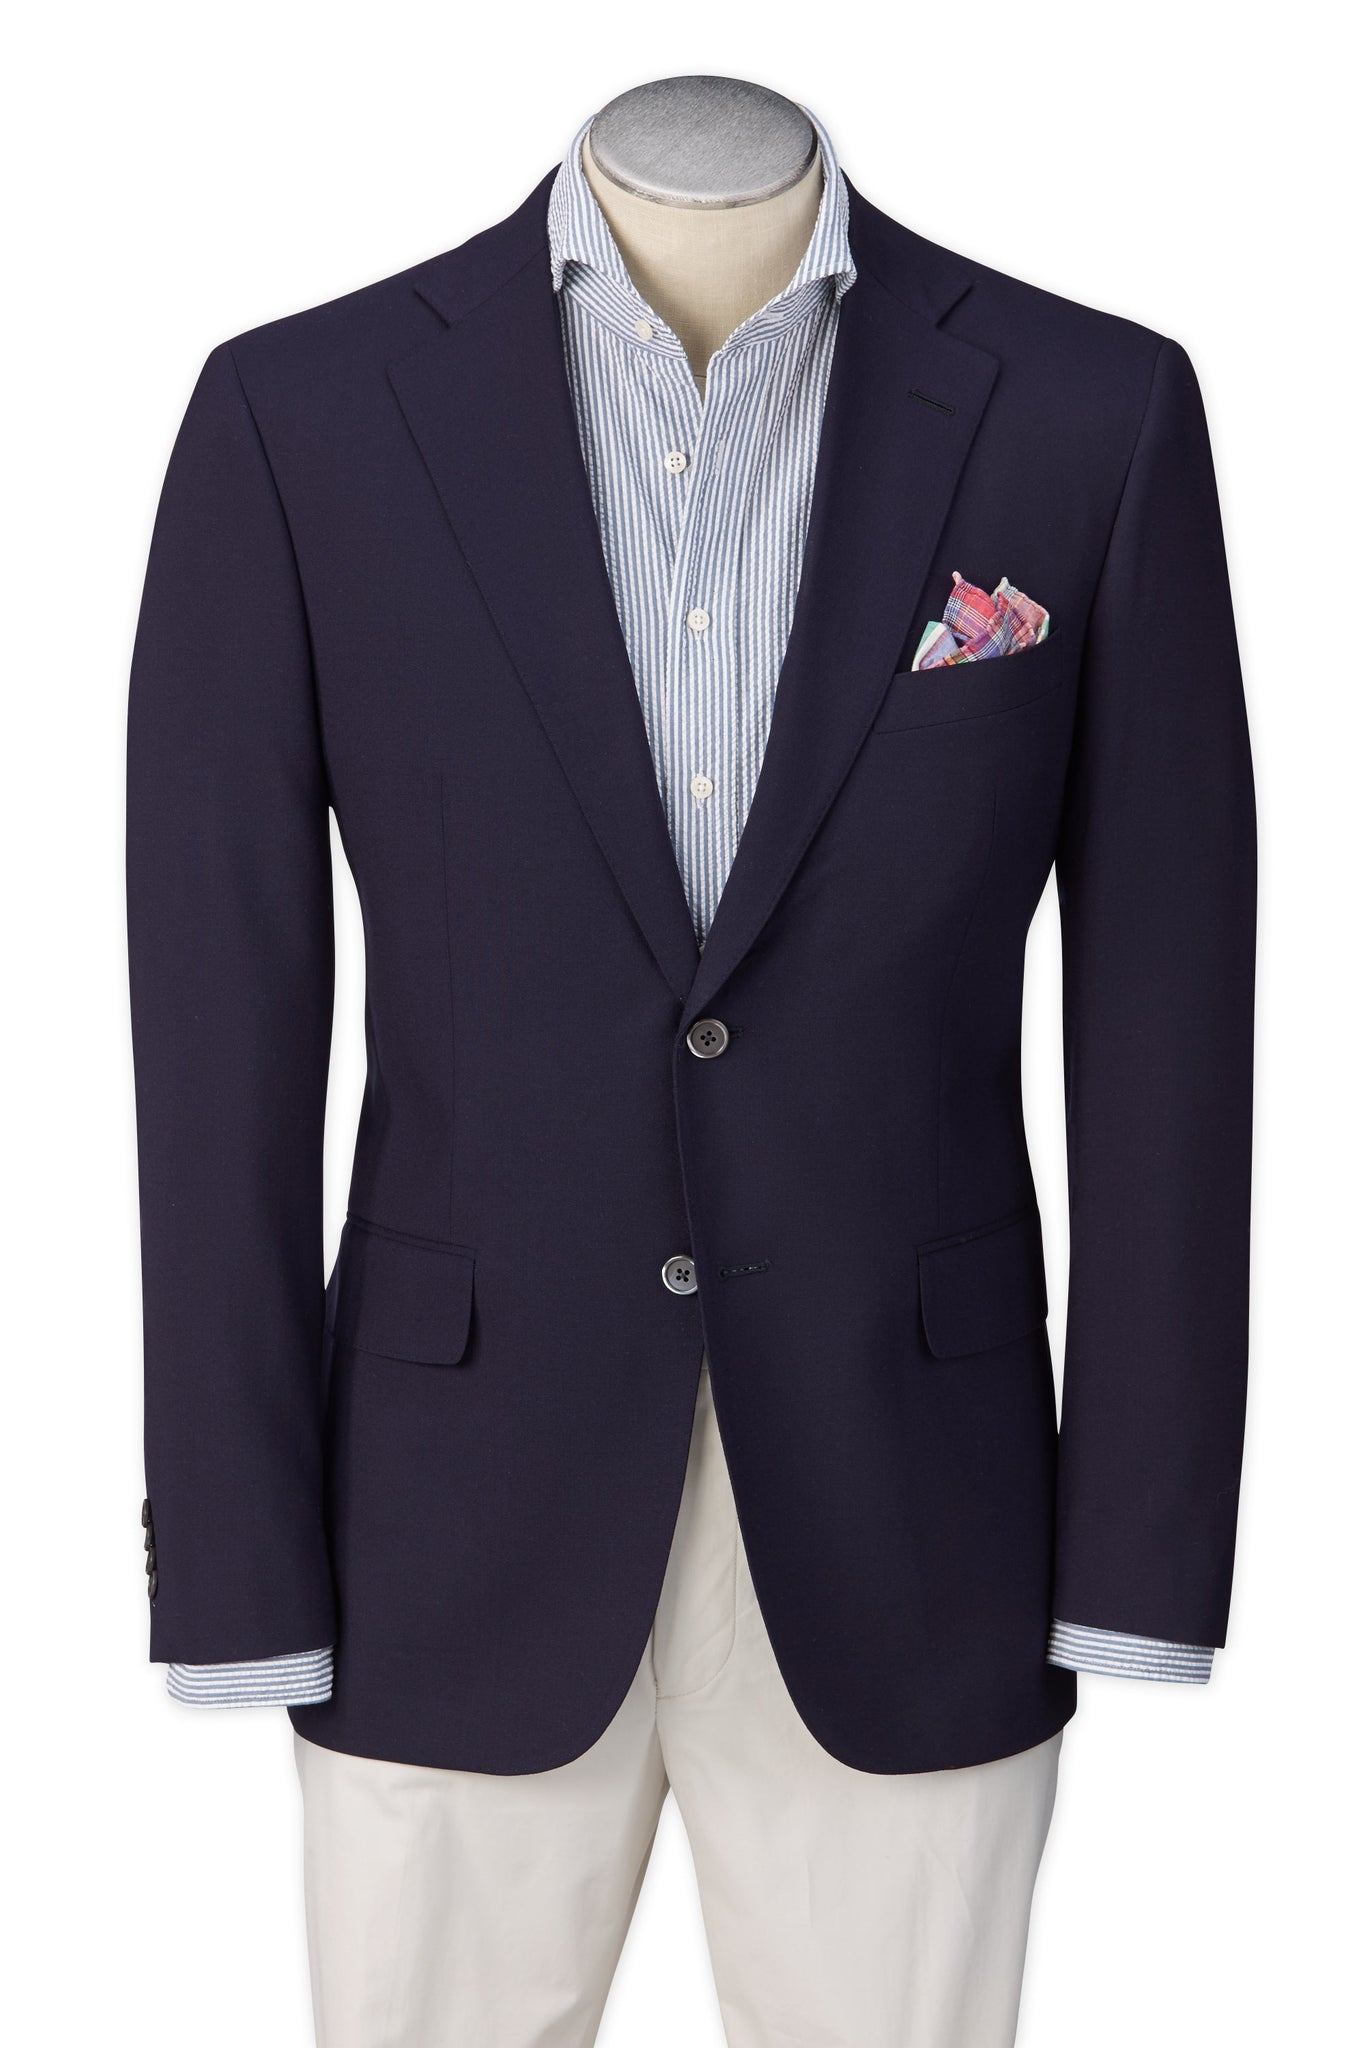 Modern Fit Navy H-Tech Super 110's Wrinkle Resistant Wool Blazer -  Hardwick.com